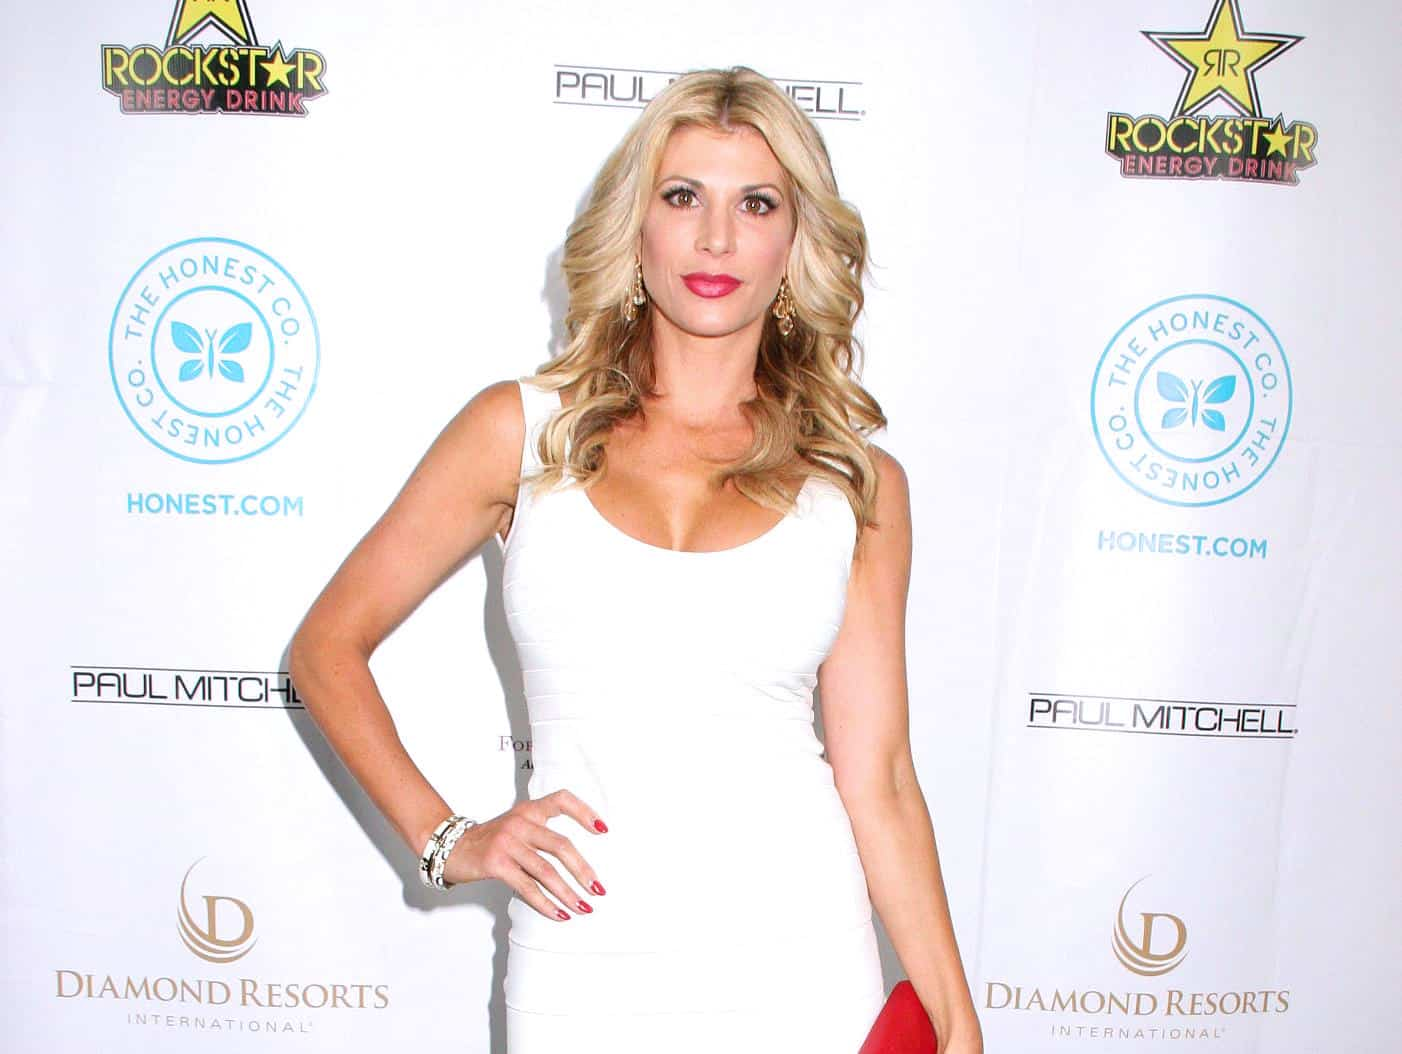 RHOC's Alexis Bellino Responds to Backlash After Shaming Her Maids Publicly With an Instagram Photo